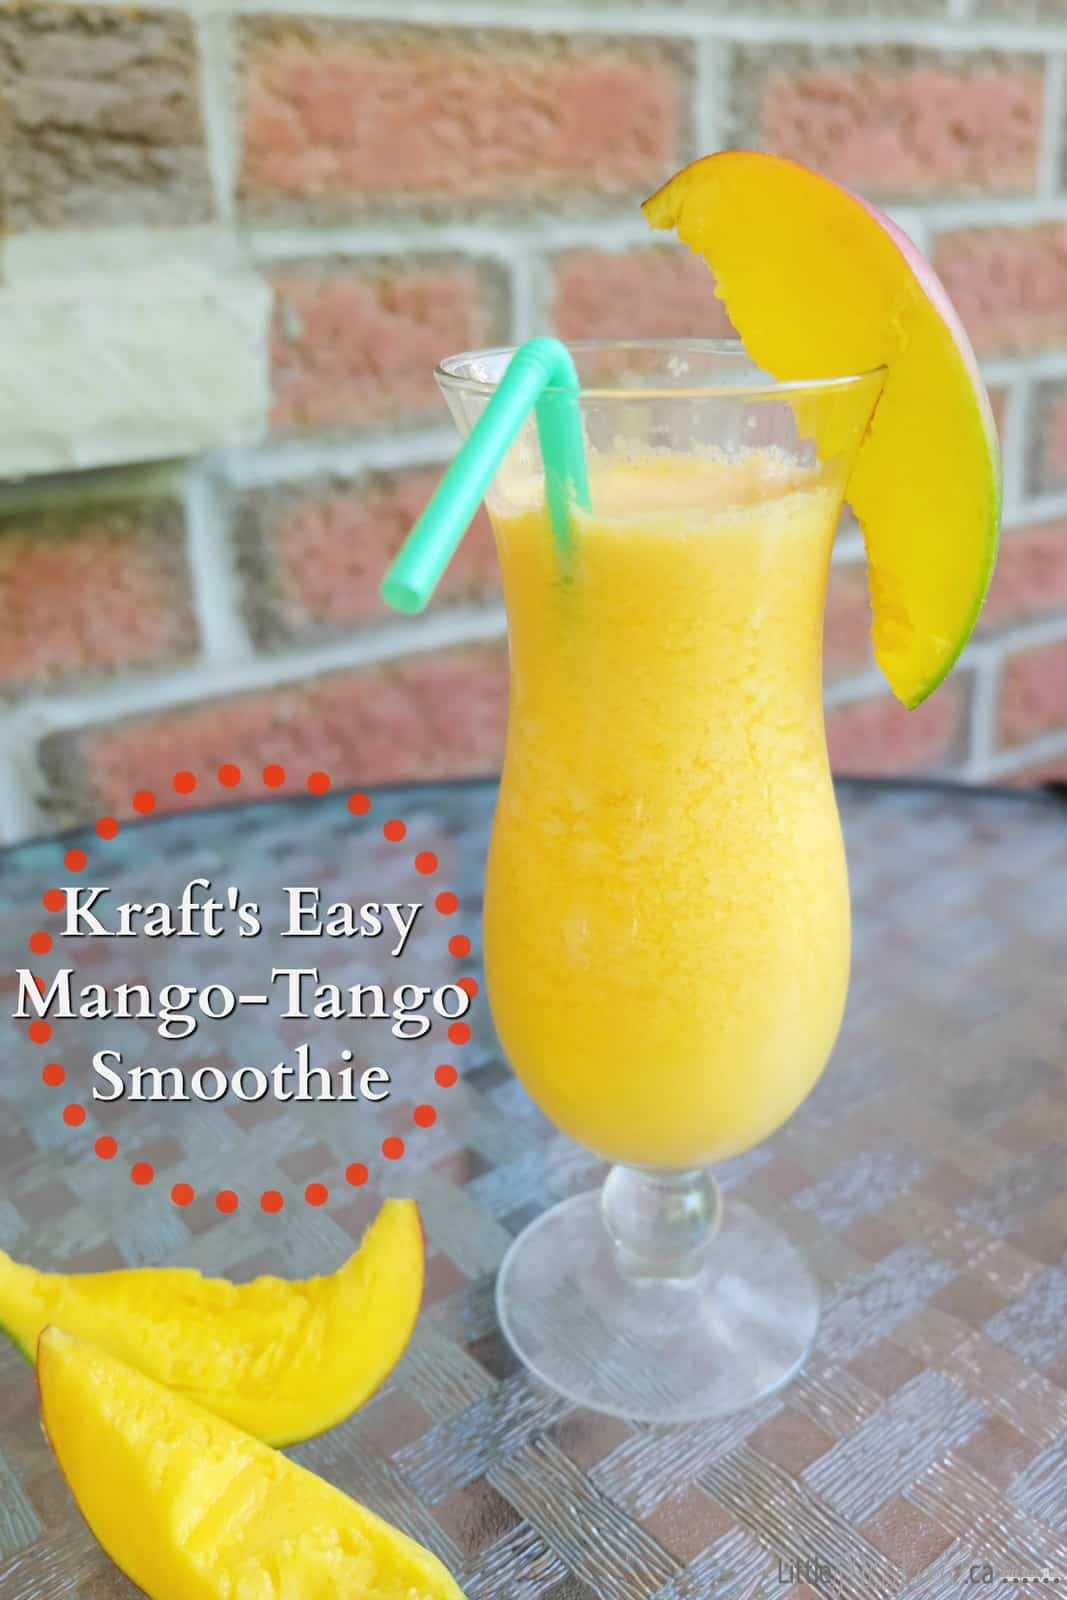 Easy Mango-Tango Smoothie Recipe – Delicious Drink for HOT Summer Days